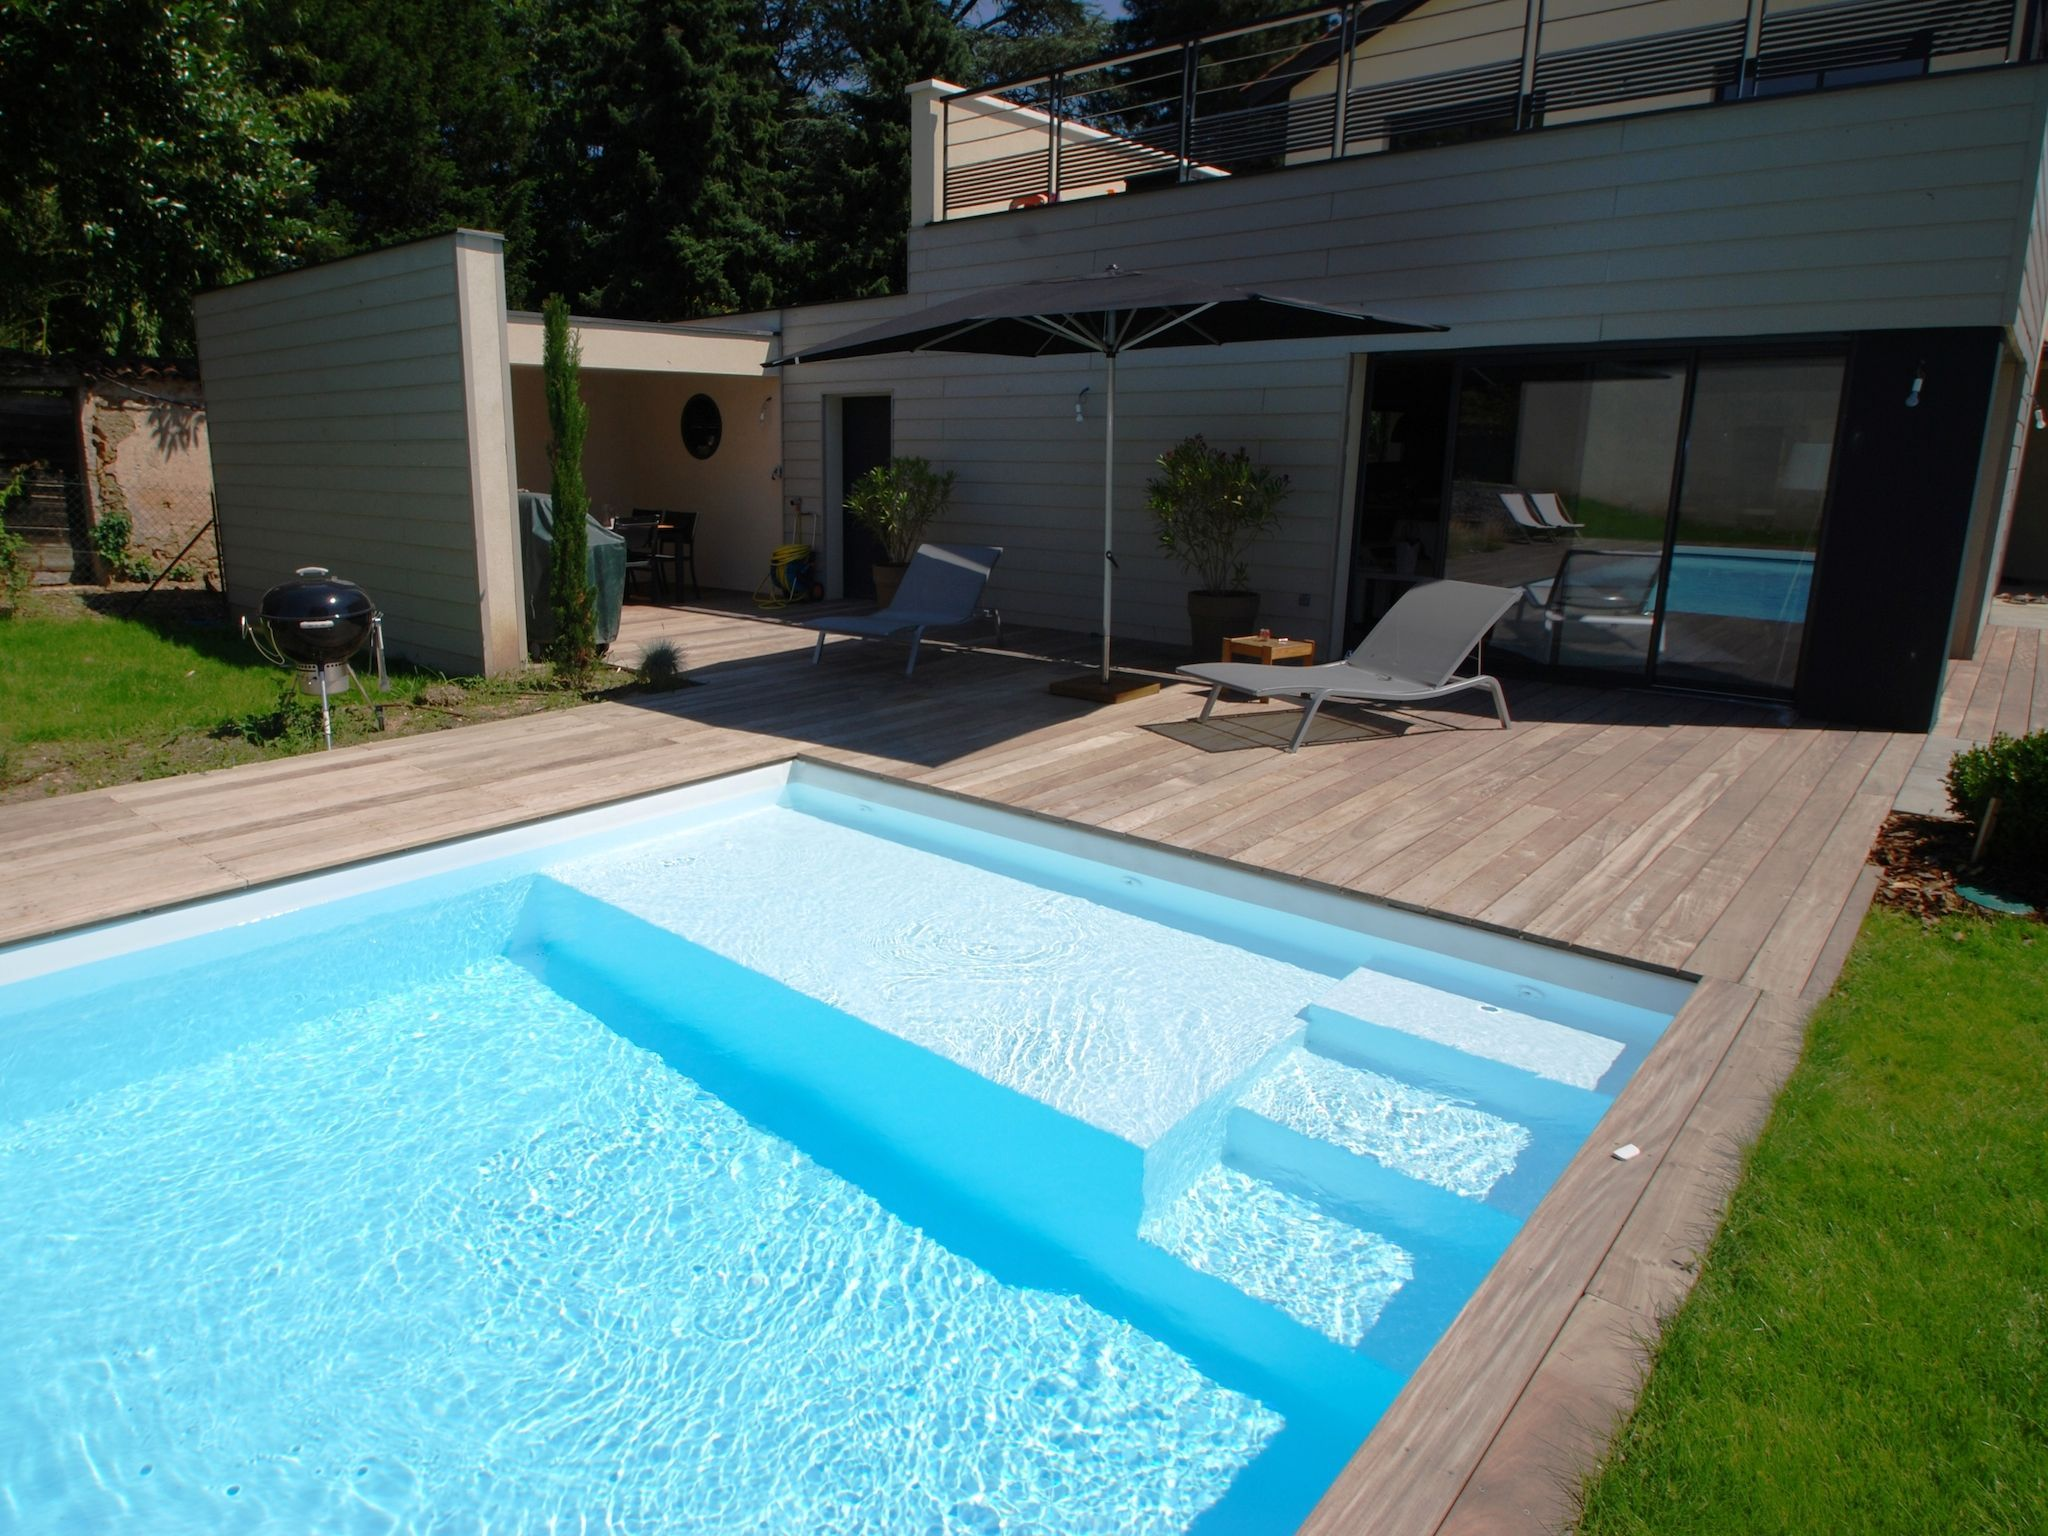 Tarif piscine desjoyaux 8x4 ragrage de la piscine with for Tarif liner piscine